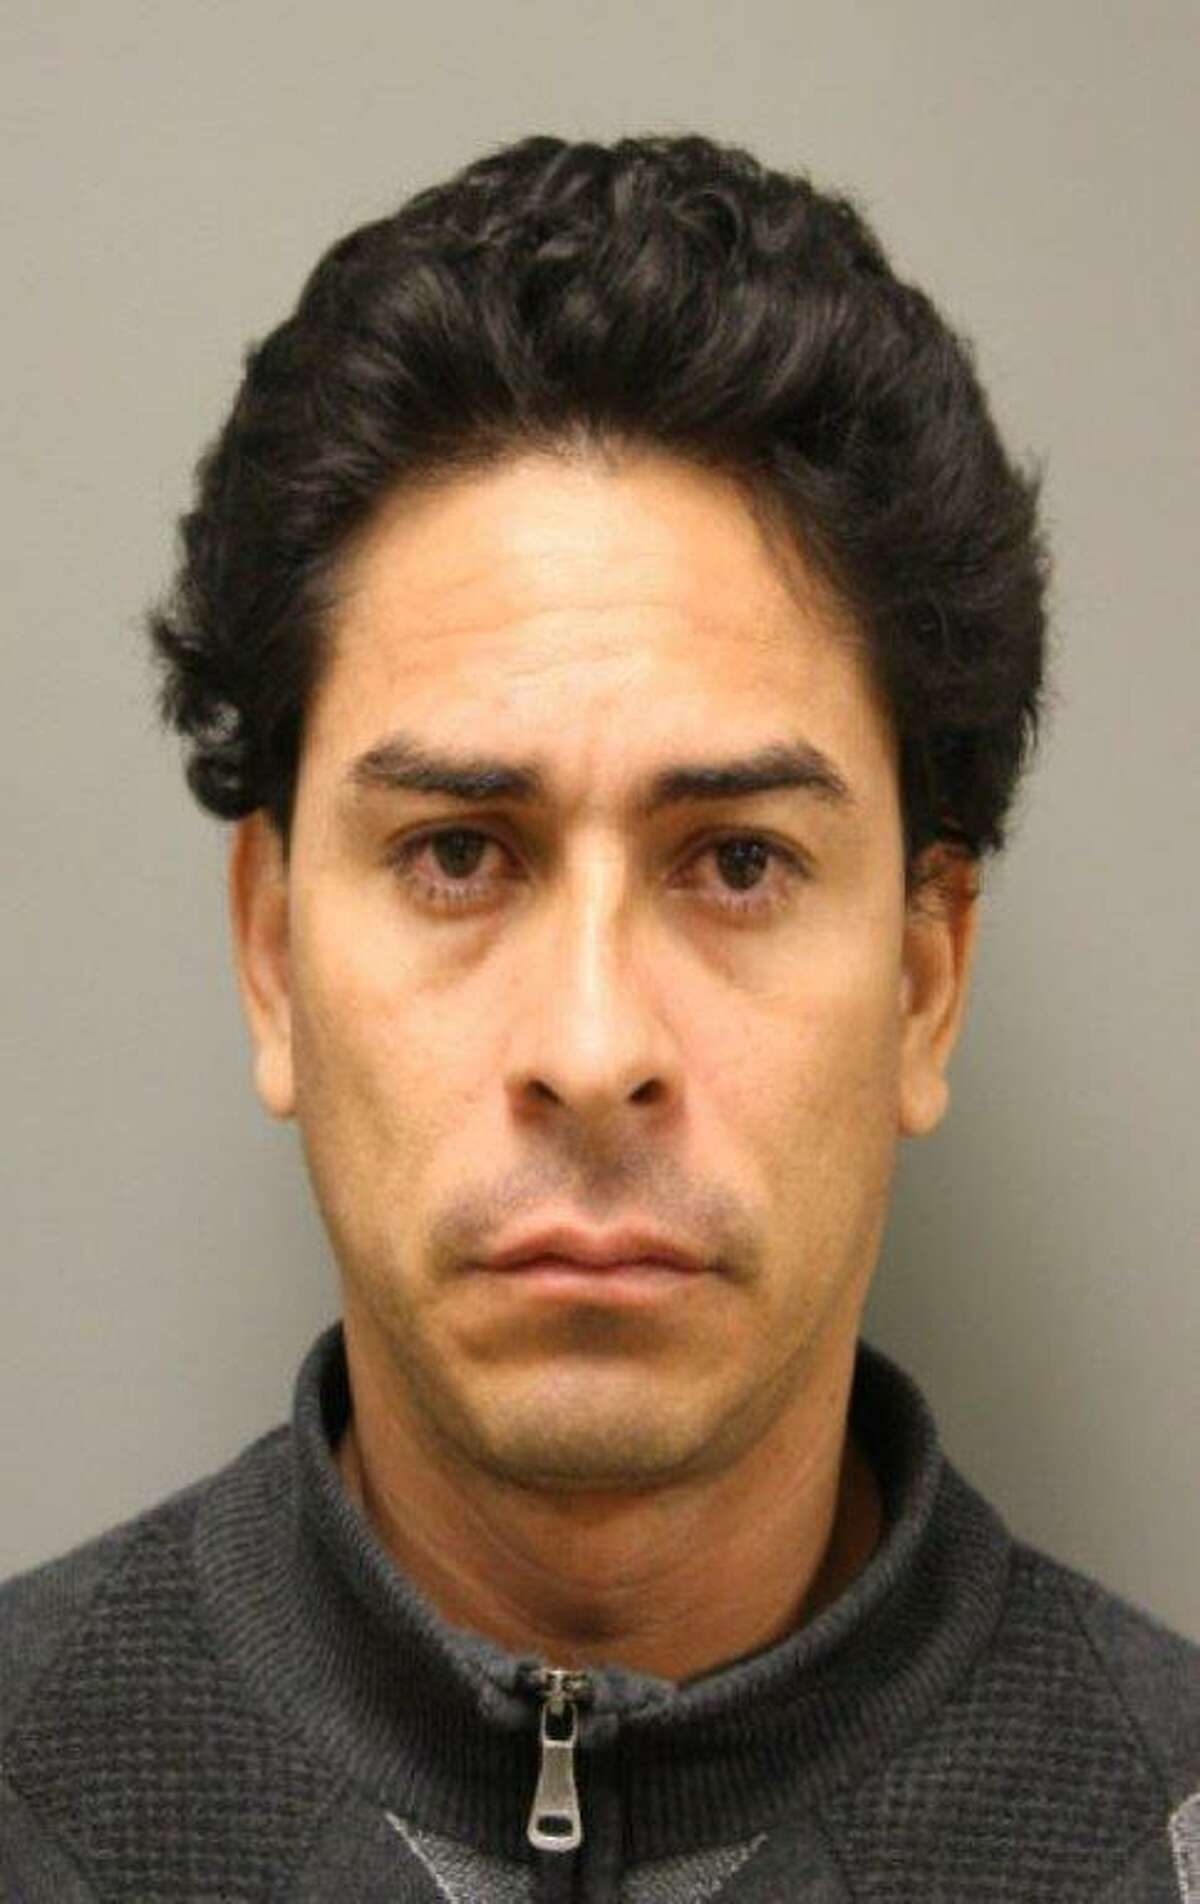 Julio Padillas, is wanted by Houston Crime Stoppers on a charge of burglary of a habitation.